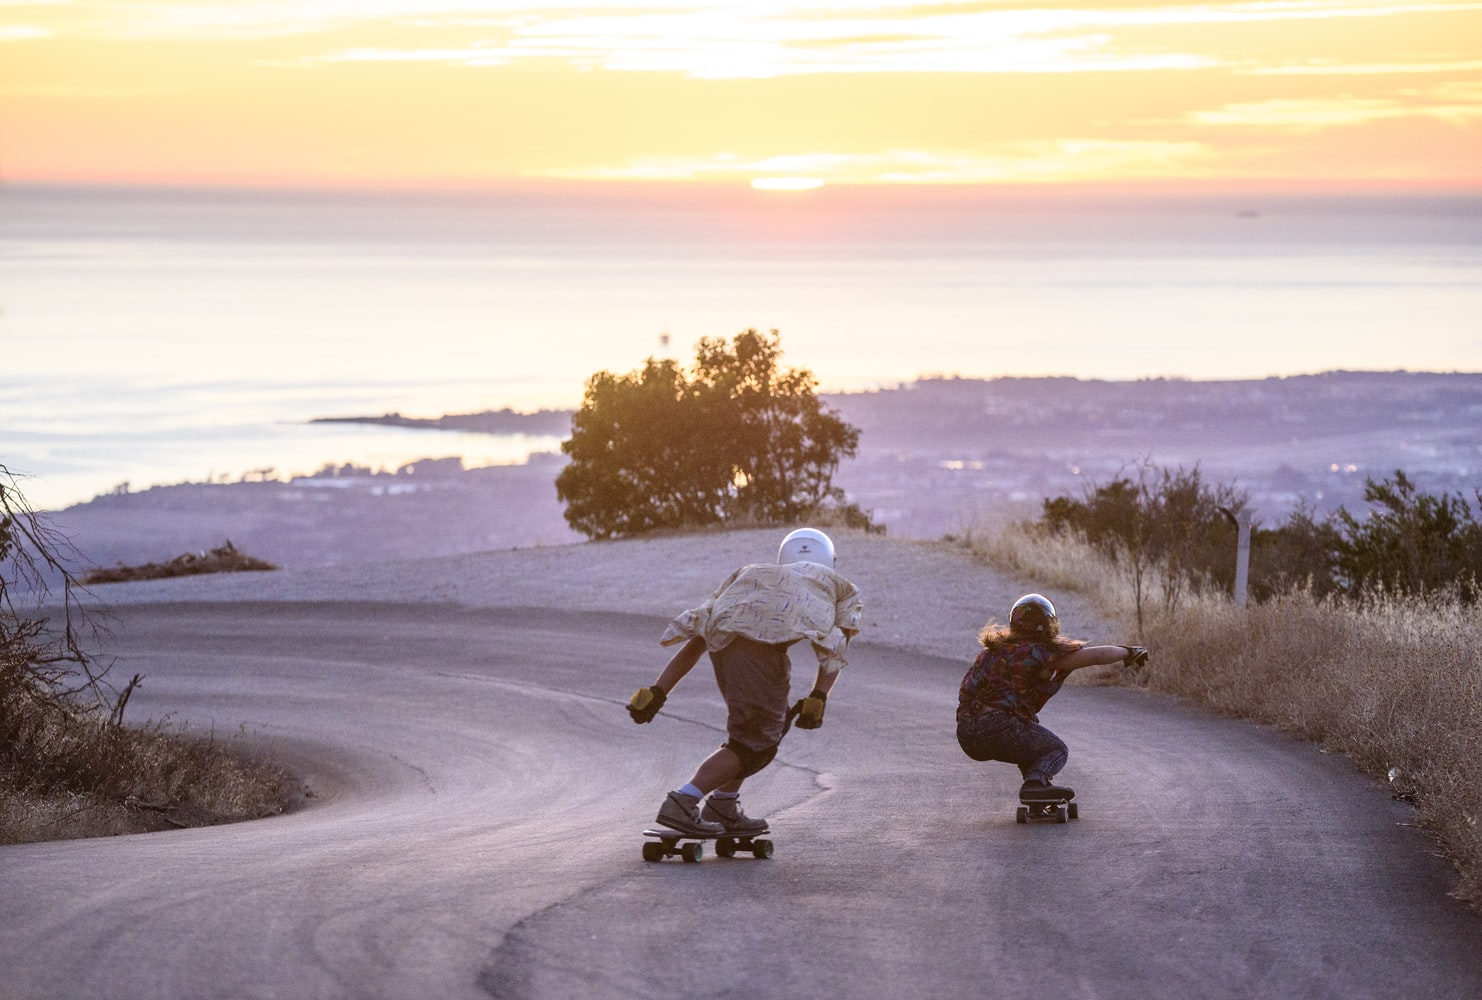 Two person wearing a helmet while riding a longboard during sunset